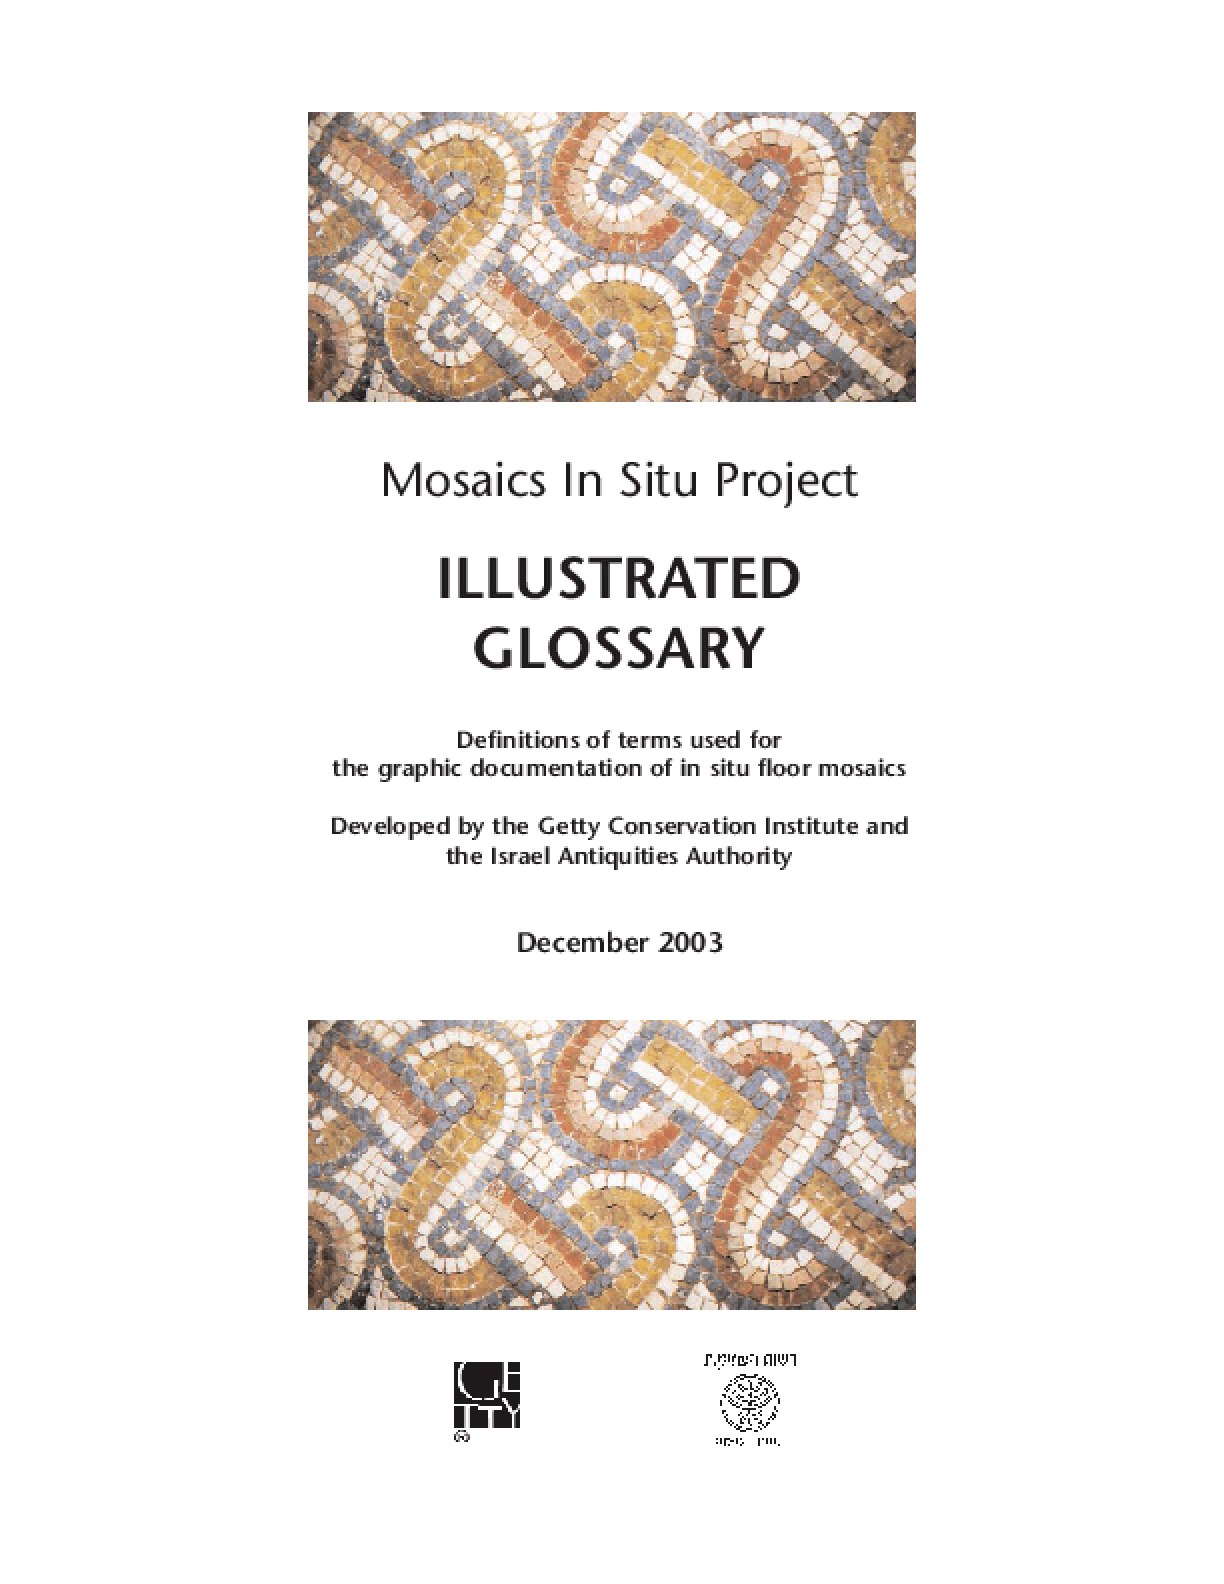 Illustrated Glossary: Mosaics In Situ Project